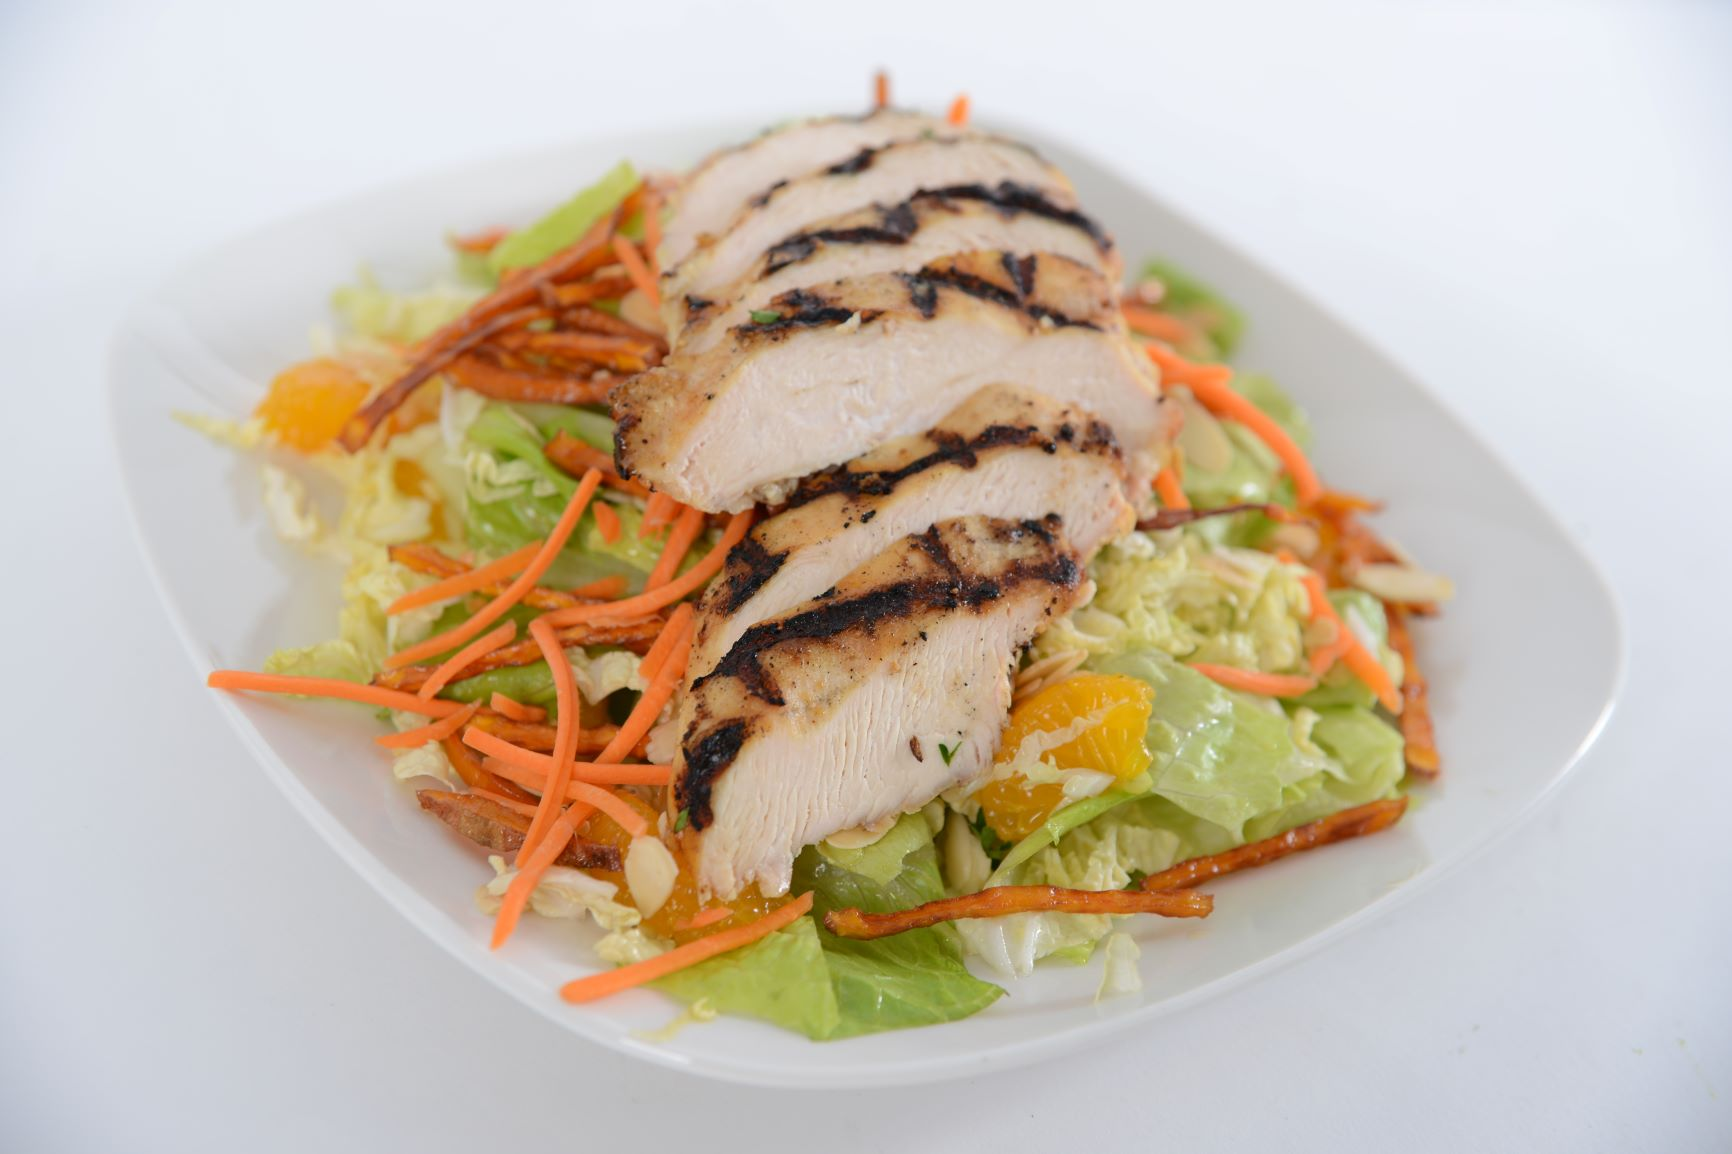 Mandarin Salad w/ Chicken Breast or Salmon